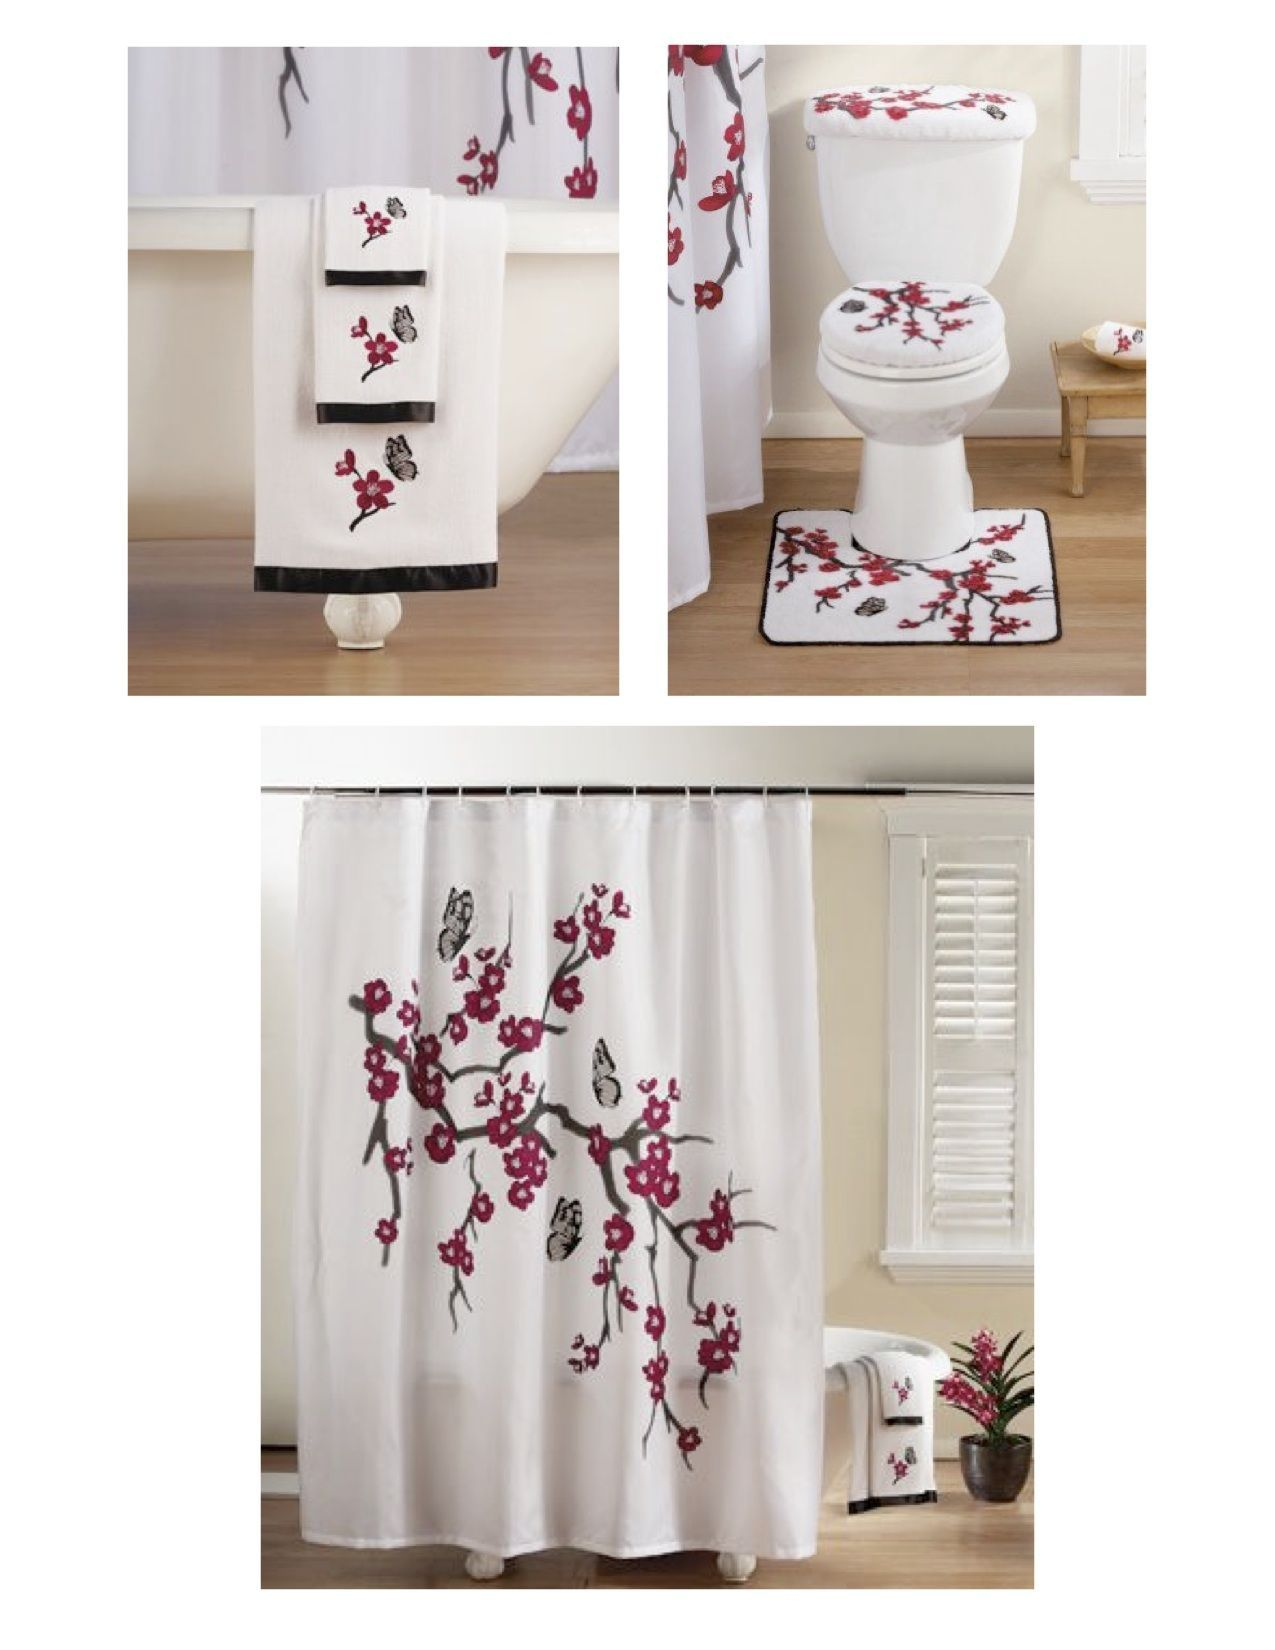 Cherry Blossom Bathroom Set In 2020 With Images Bathroom Sets